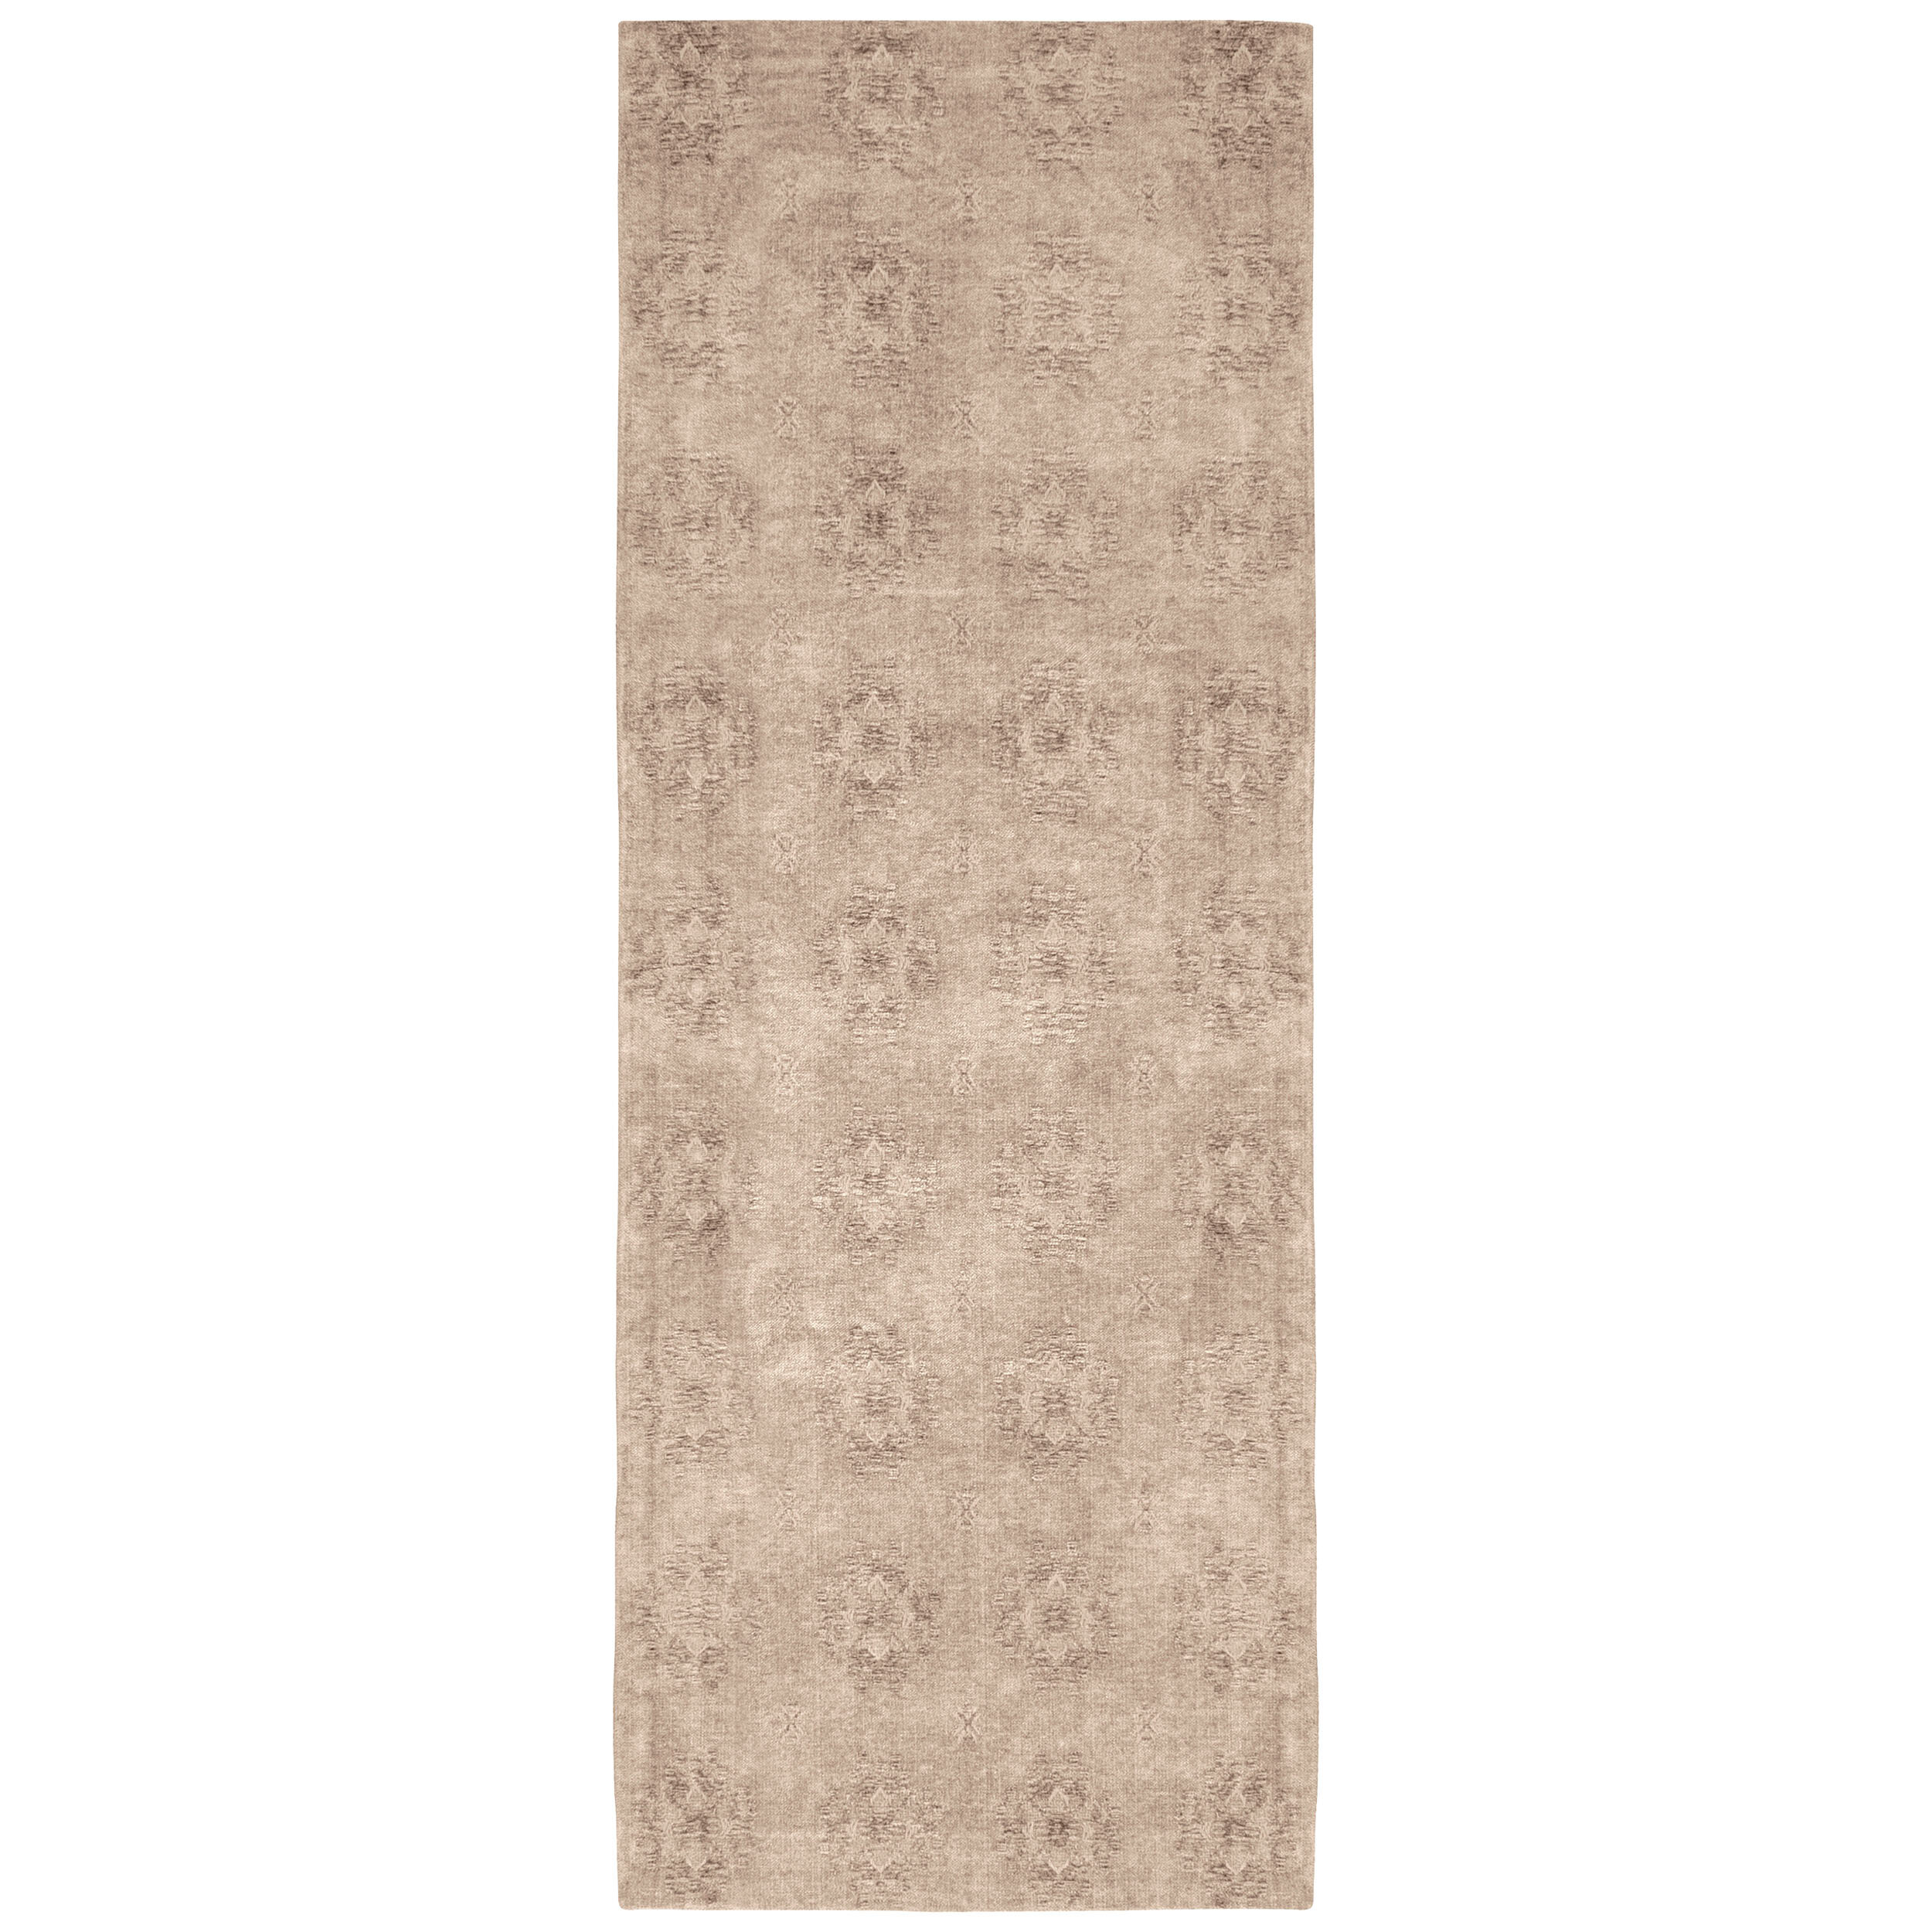 French Connection Jaylen Jacquard Ivory Area Rug